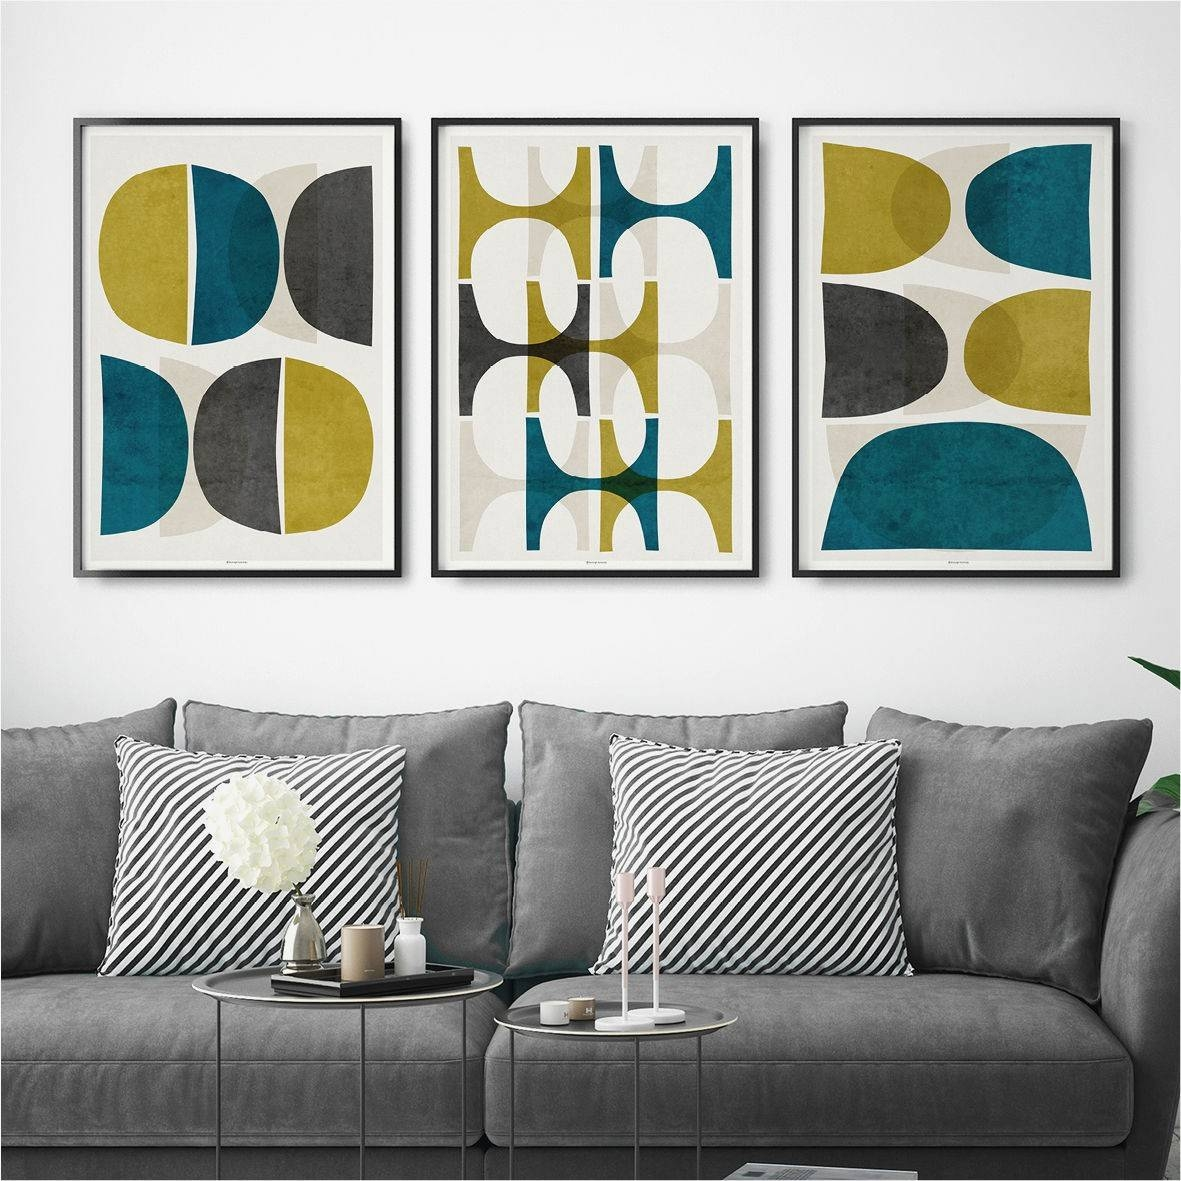 Living Room : Wall Art Sets For Living Room Images Home Design Regarding Most Current Wall Art Sets For Living Room (View 6 of 20)